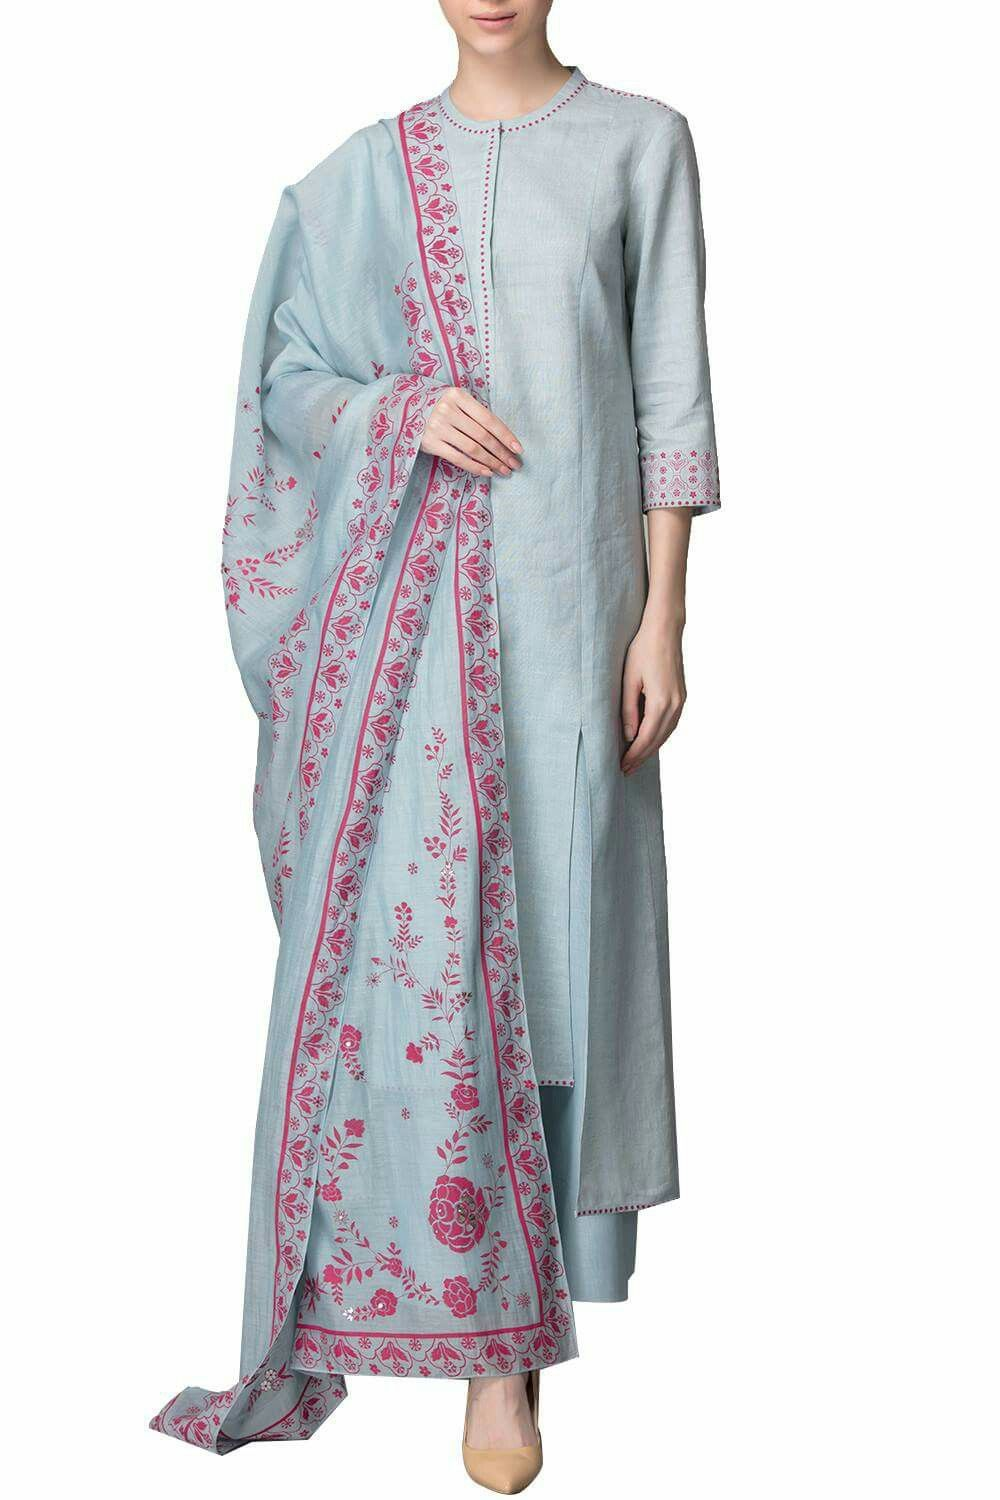 Pin by gauri on Palazzo Pants | Pinterest | Indian wear, Ethnic and ...